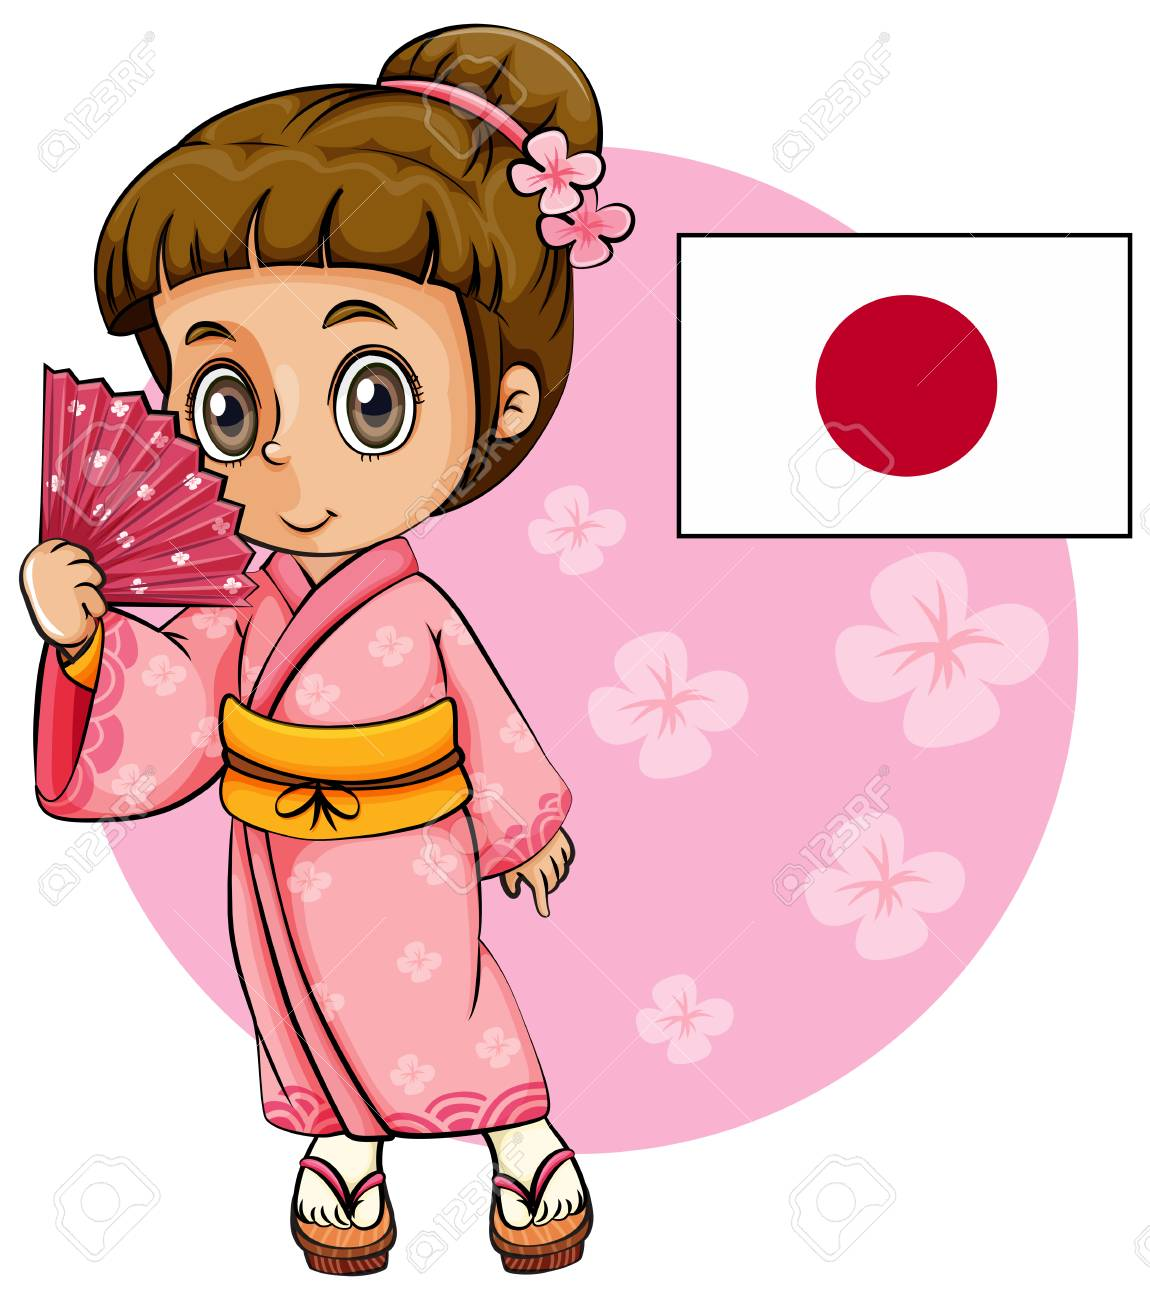 hight resolution of japanese girl in pink kimono and japan flag illustration stock vector 76425117